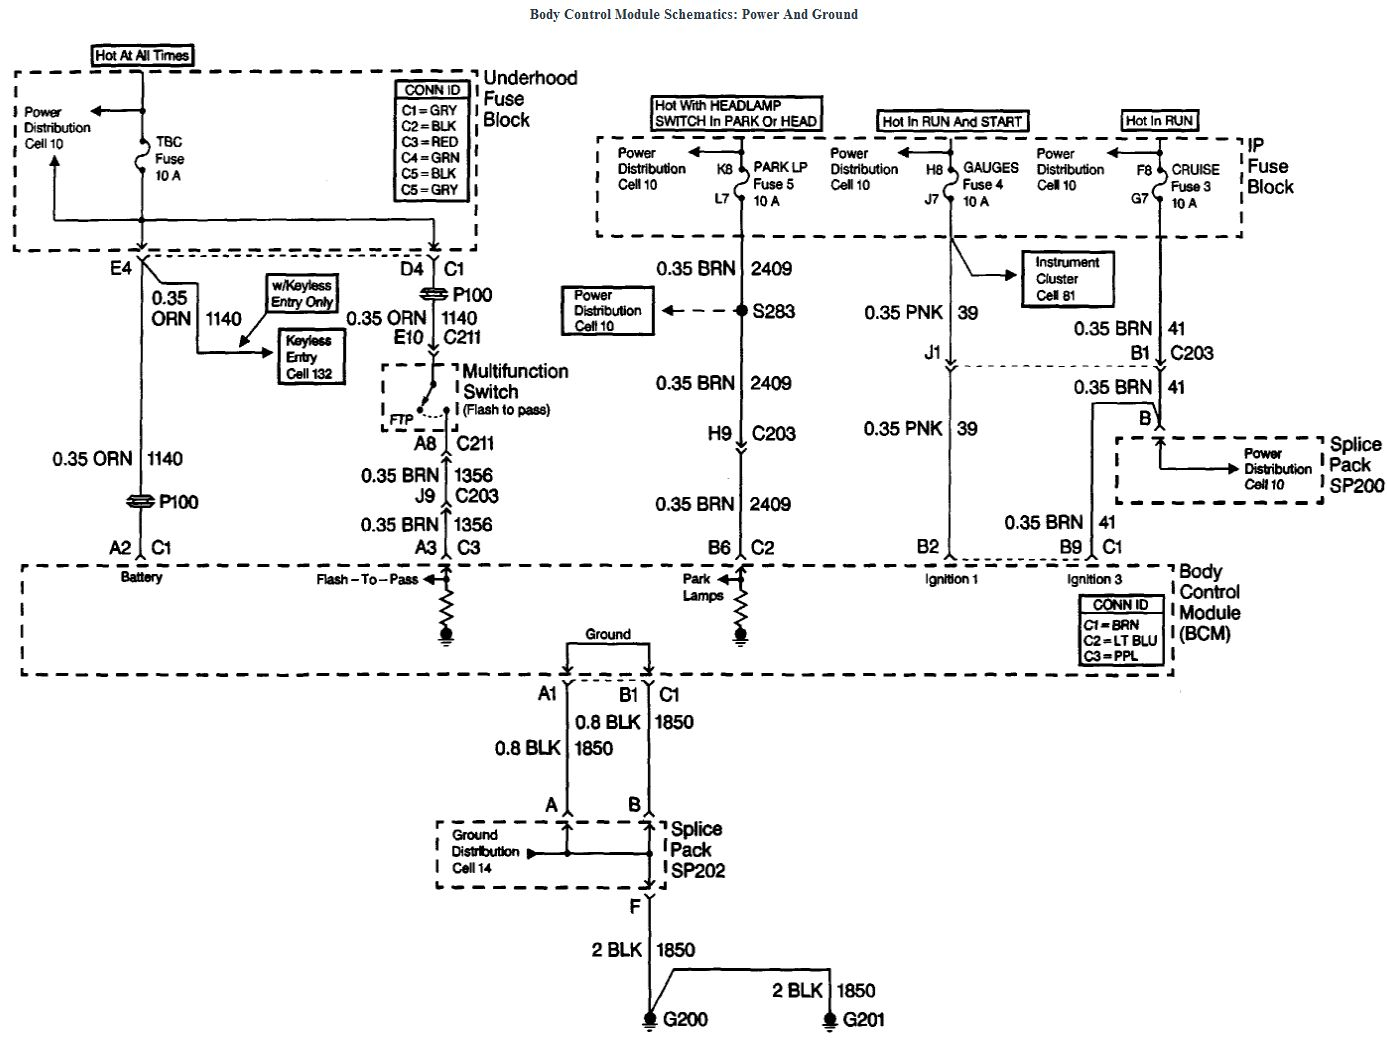 hight resolution of 1999 chevy tahoe body control module diagram wiring diagram for you 1999 chevy tahoe body control module diagram